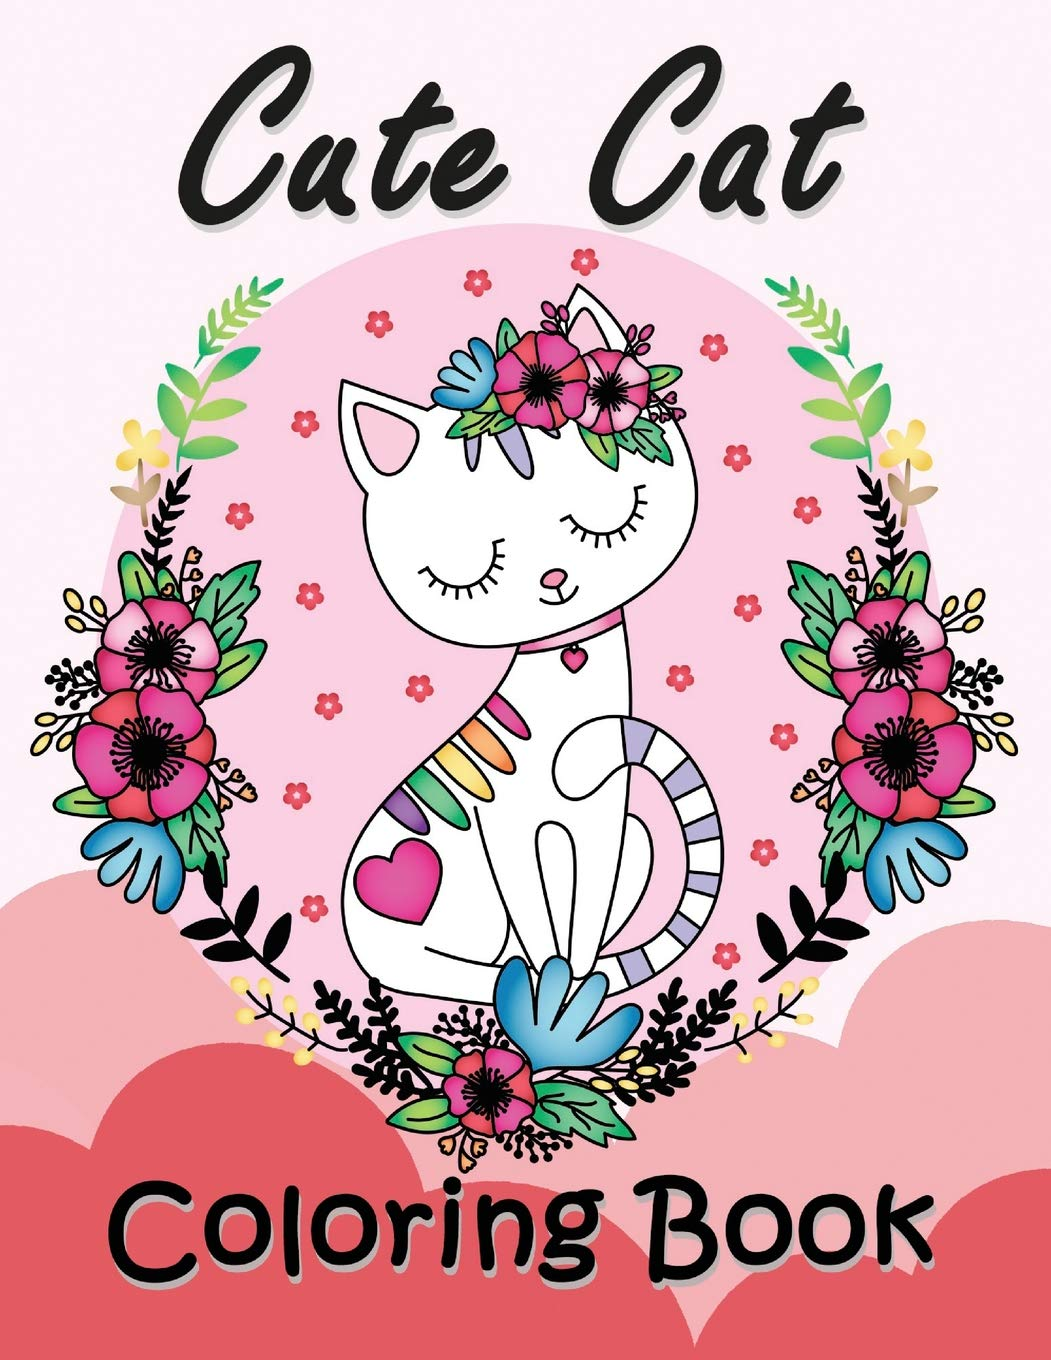 Cute Cat Coloring Book Easy And Beautiful Animals In The Fantasy World Coloring Pages Rocket Publishing 9781794640955 Amazon Com Books